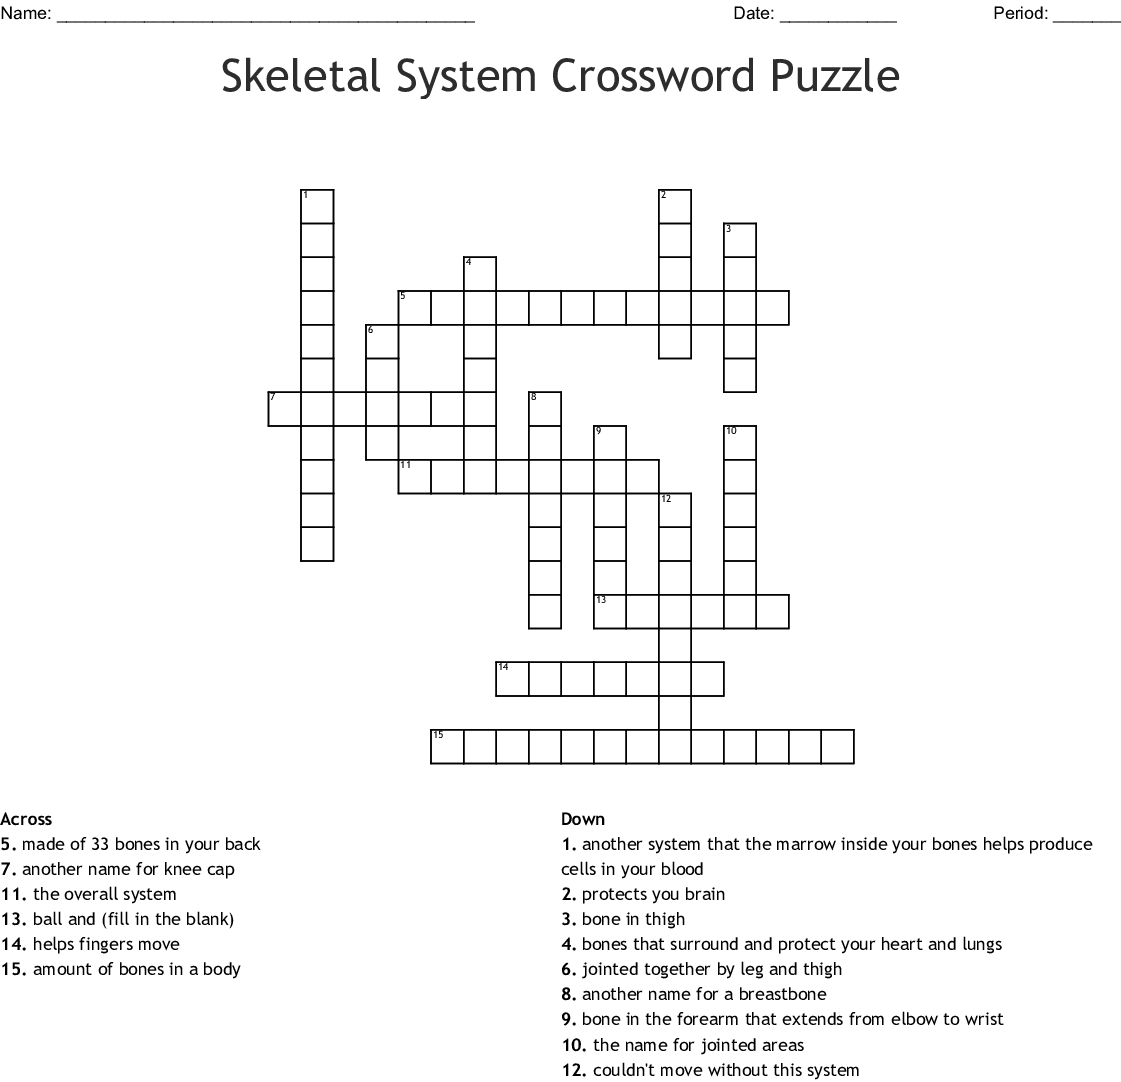 Skeletal System Crossword Puzzle Crossword - Wordmint - Printable Skeletal System Crossword Puzzle